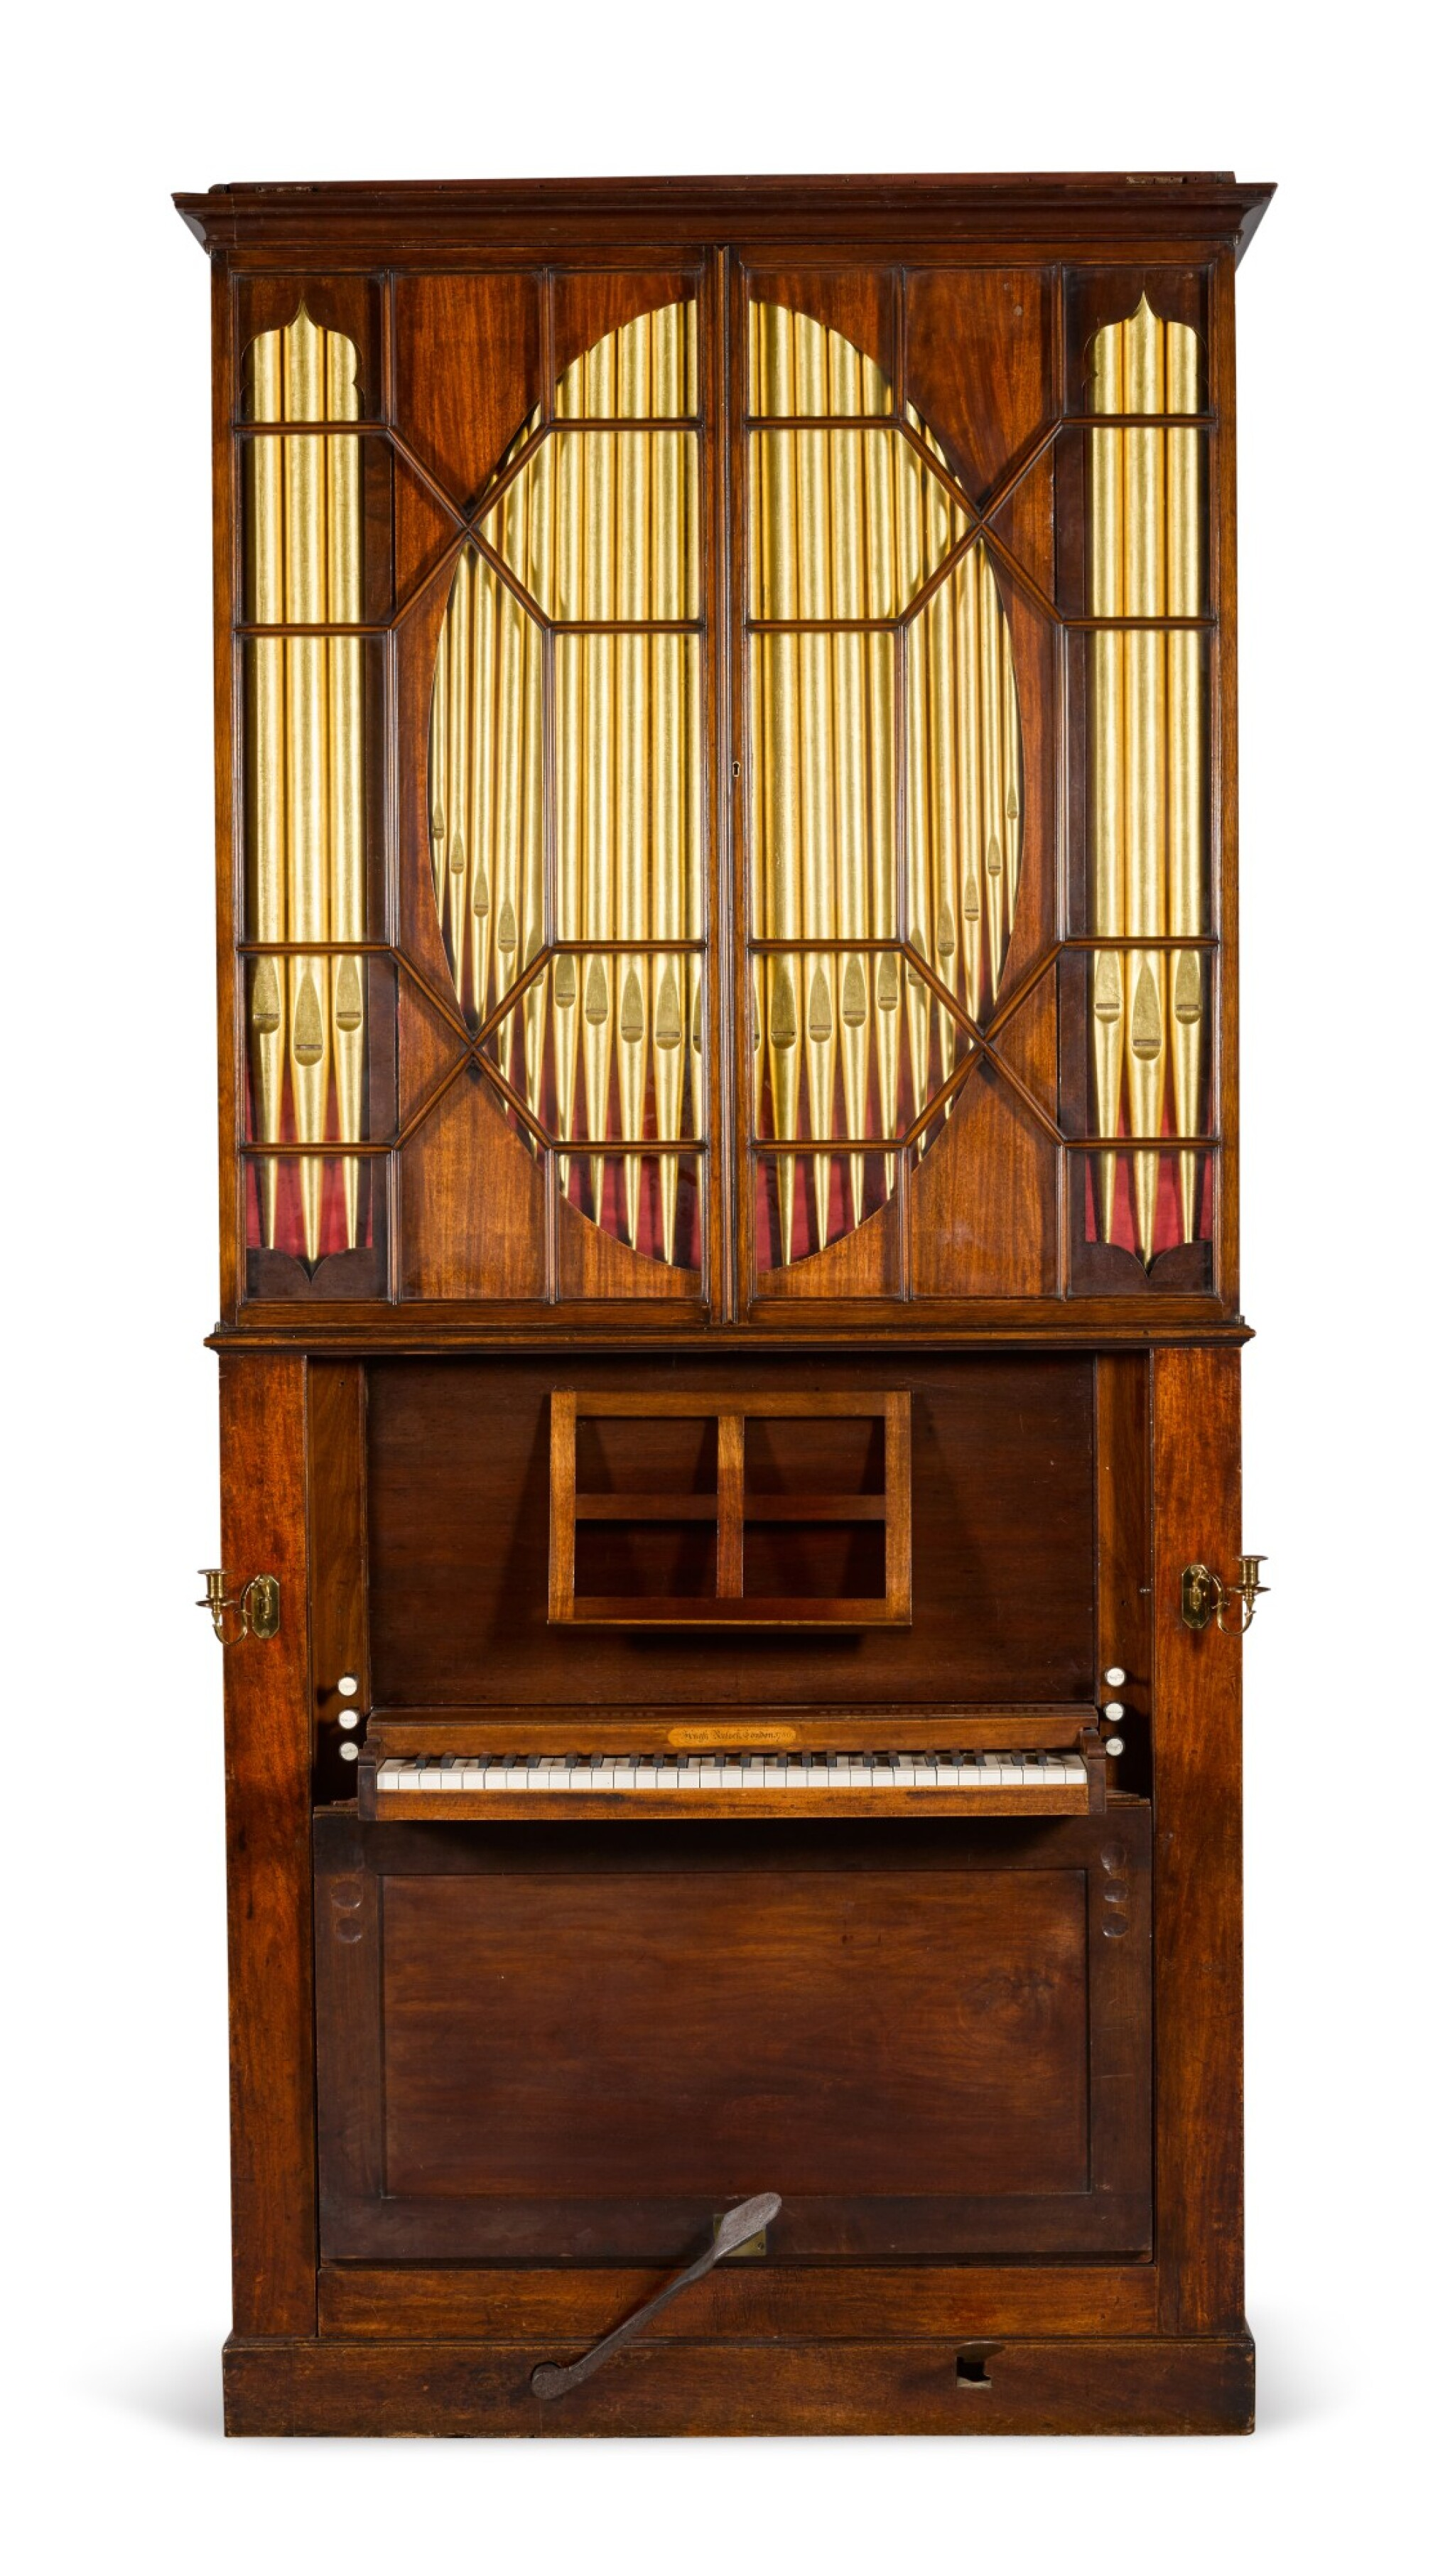 View full screen - View 1 of Lot 167. A George III mahogany chamber organ by Hugh Russell, 1780.